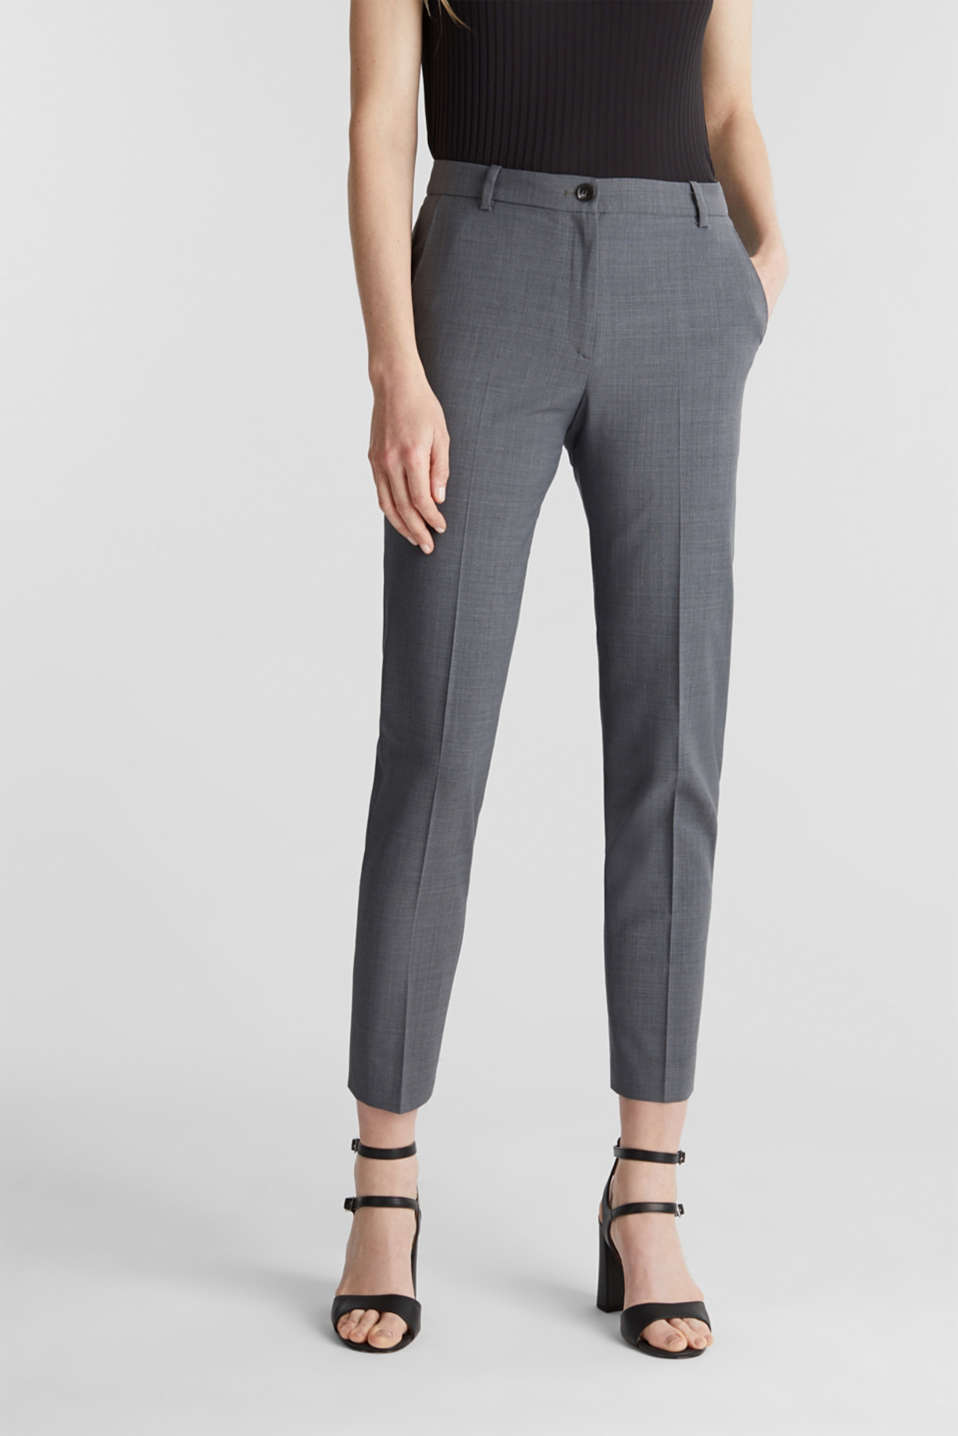 Esprit - With wool: ACTIVE Mix + Match stretch trousers